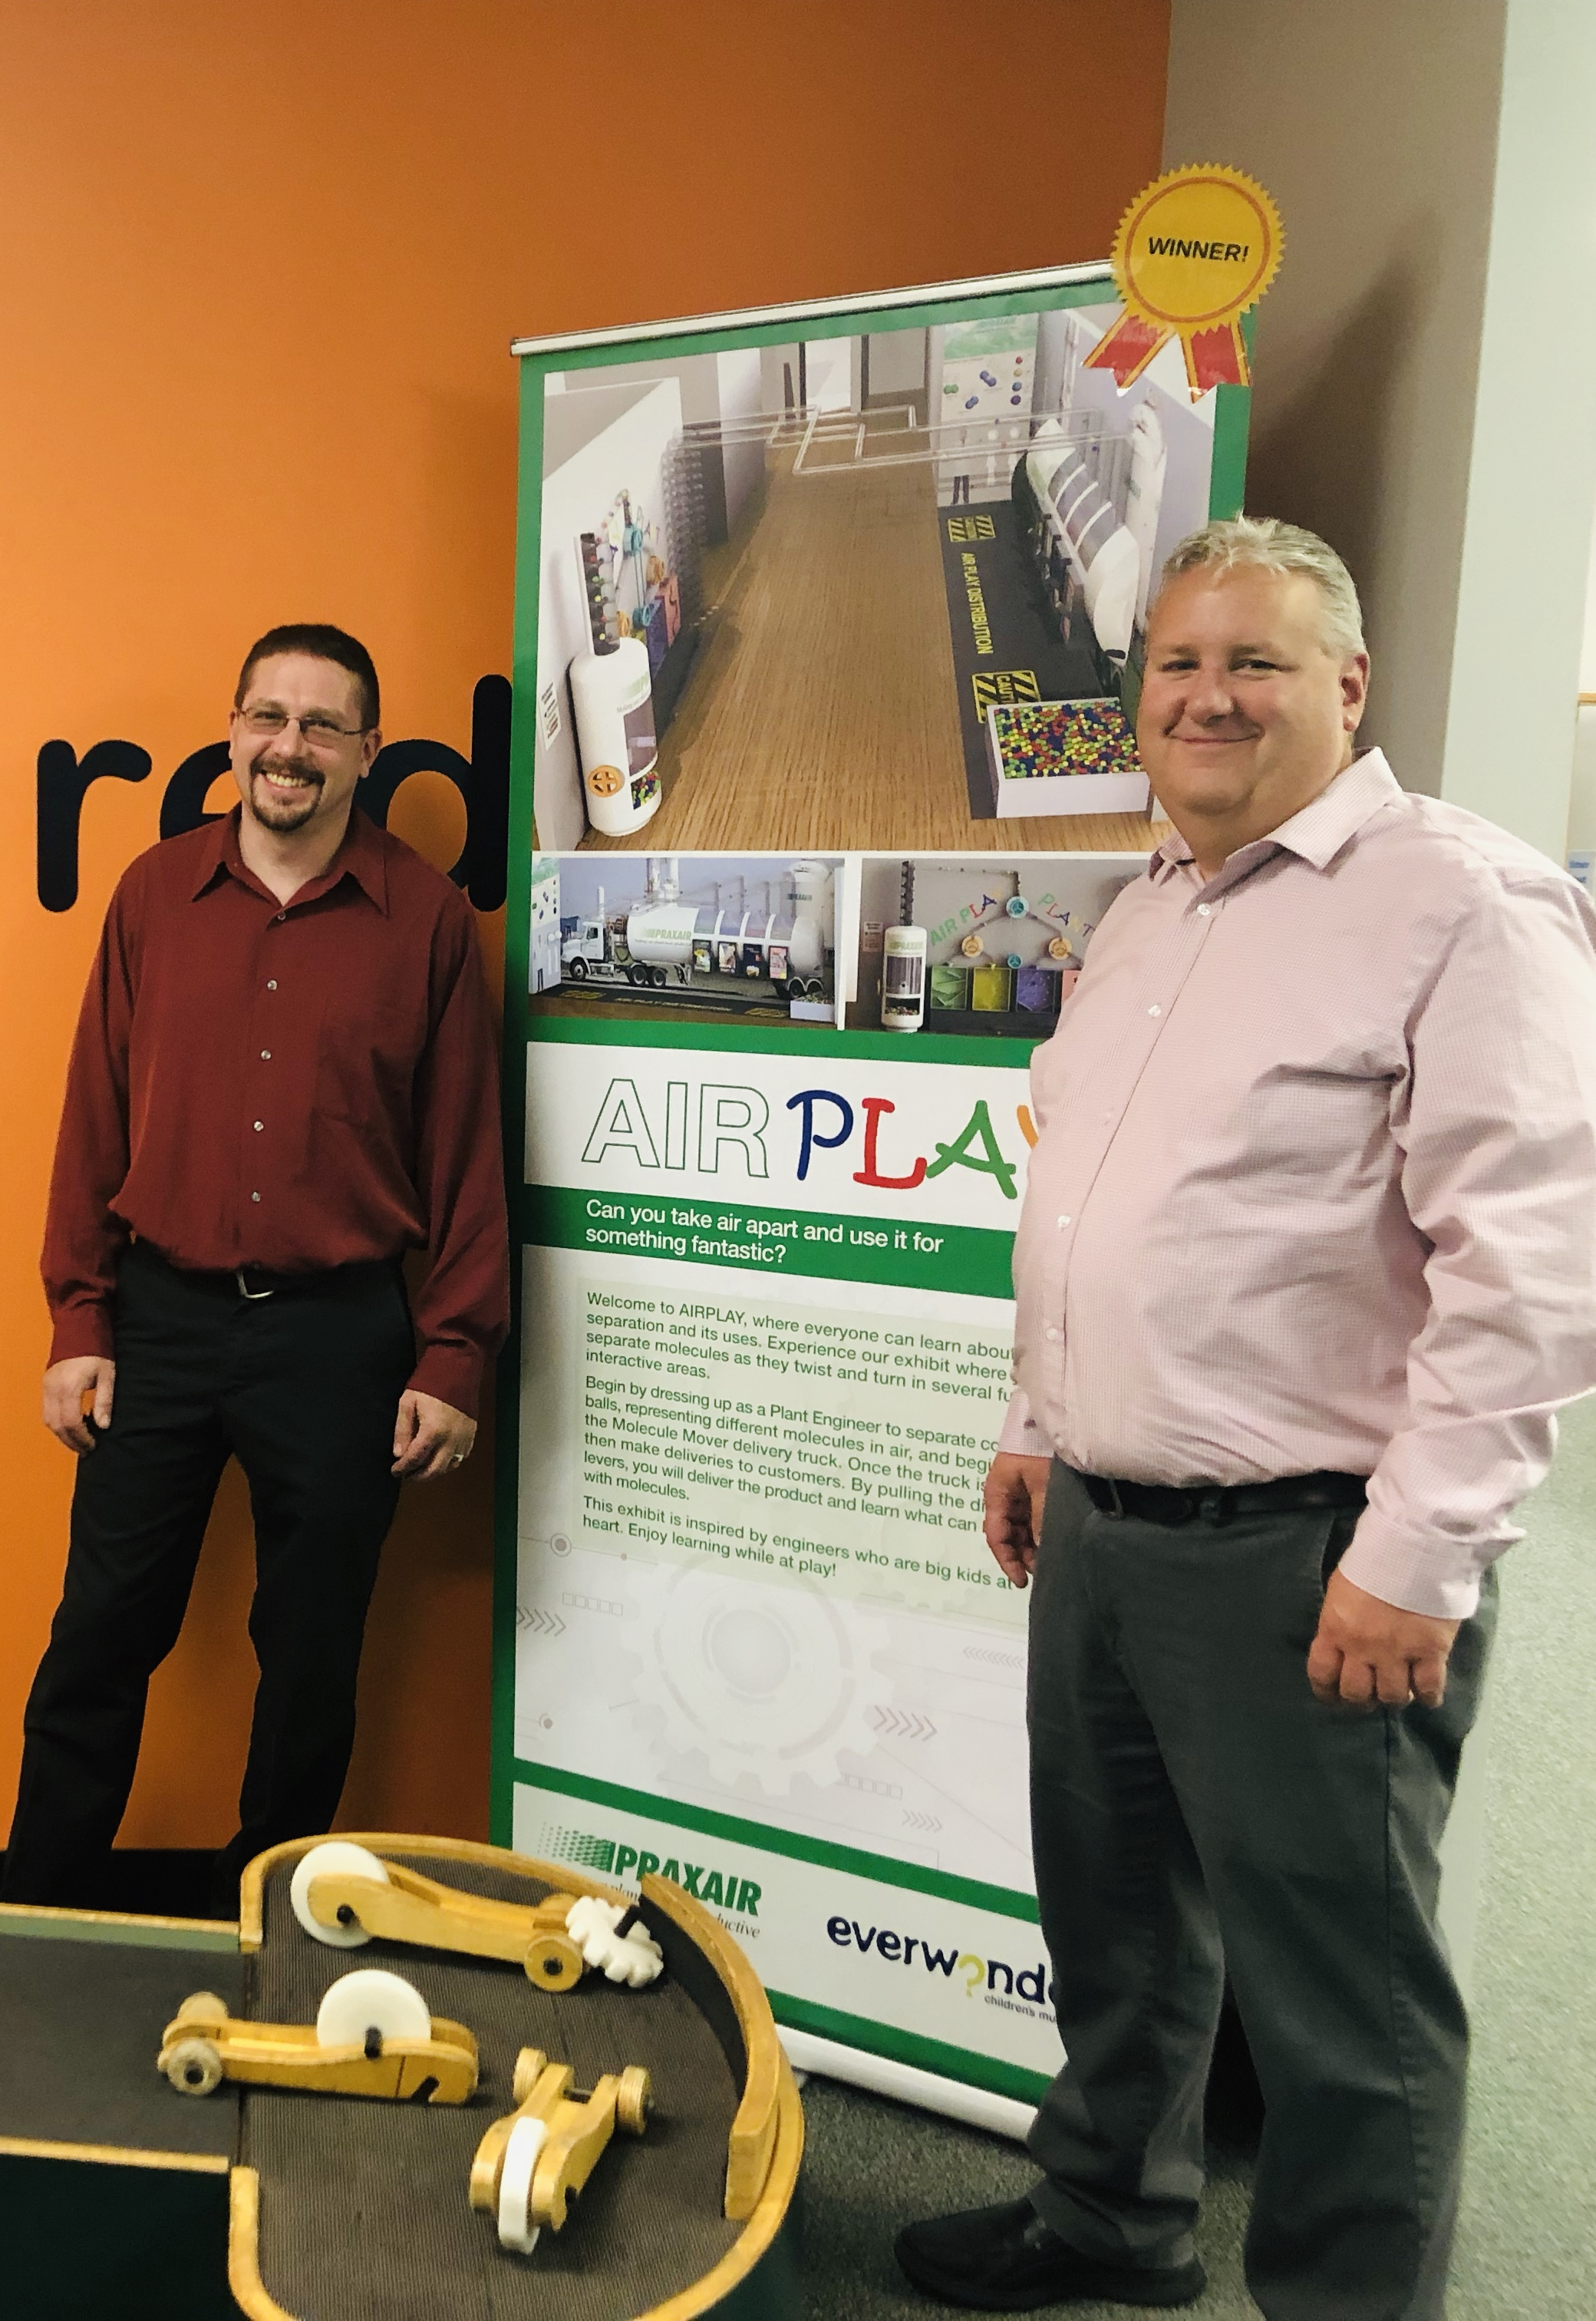 Praxair design winners visit EverWonder! - Andy Dybdahl and Jeff Goodband were able to make the trip from upstate New York to Newtown & see where their new exhibit will be featured once complete.